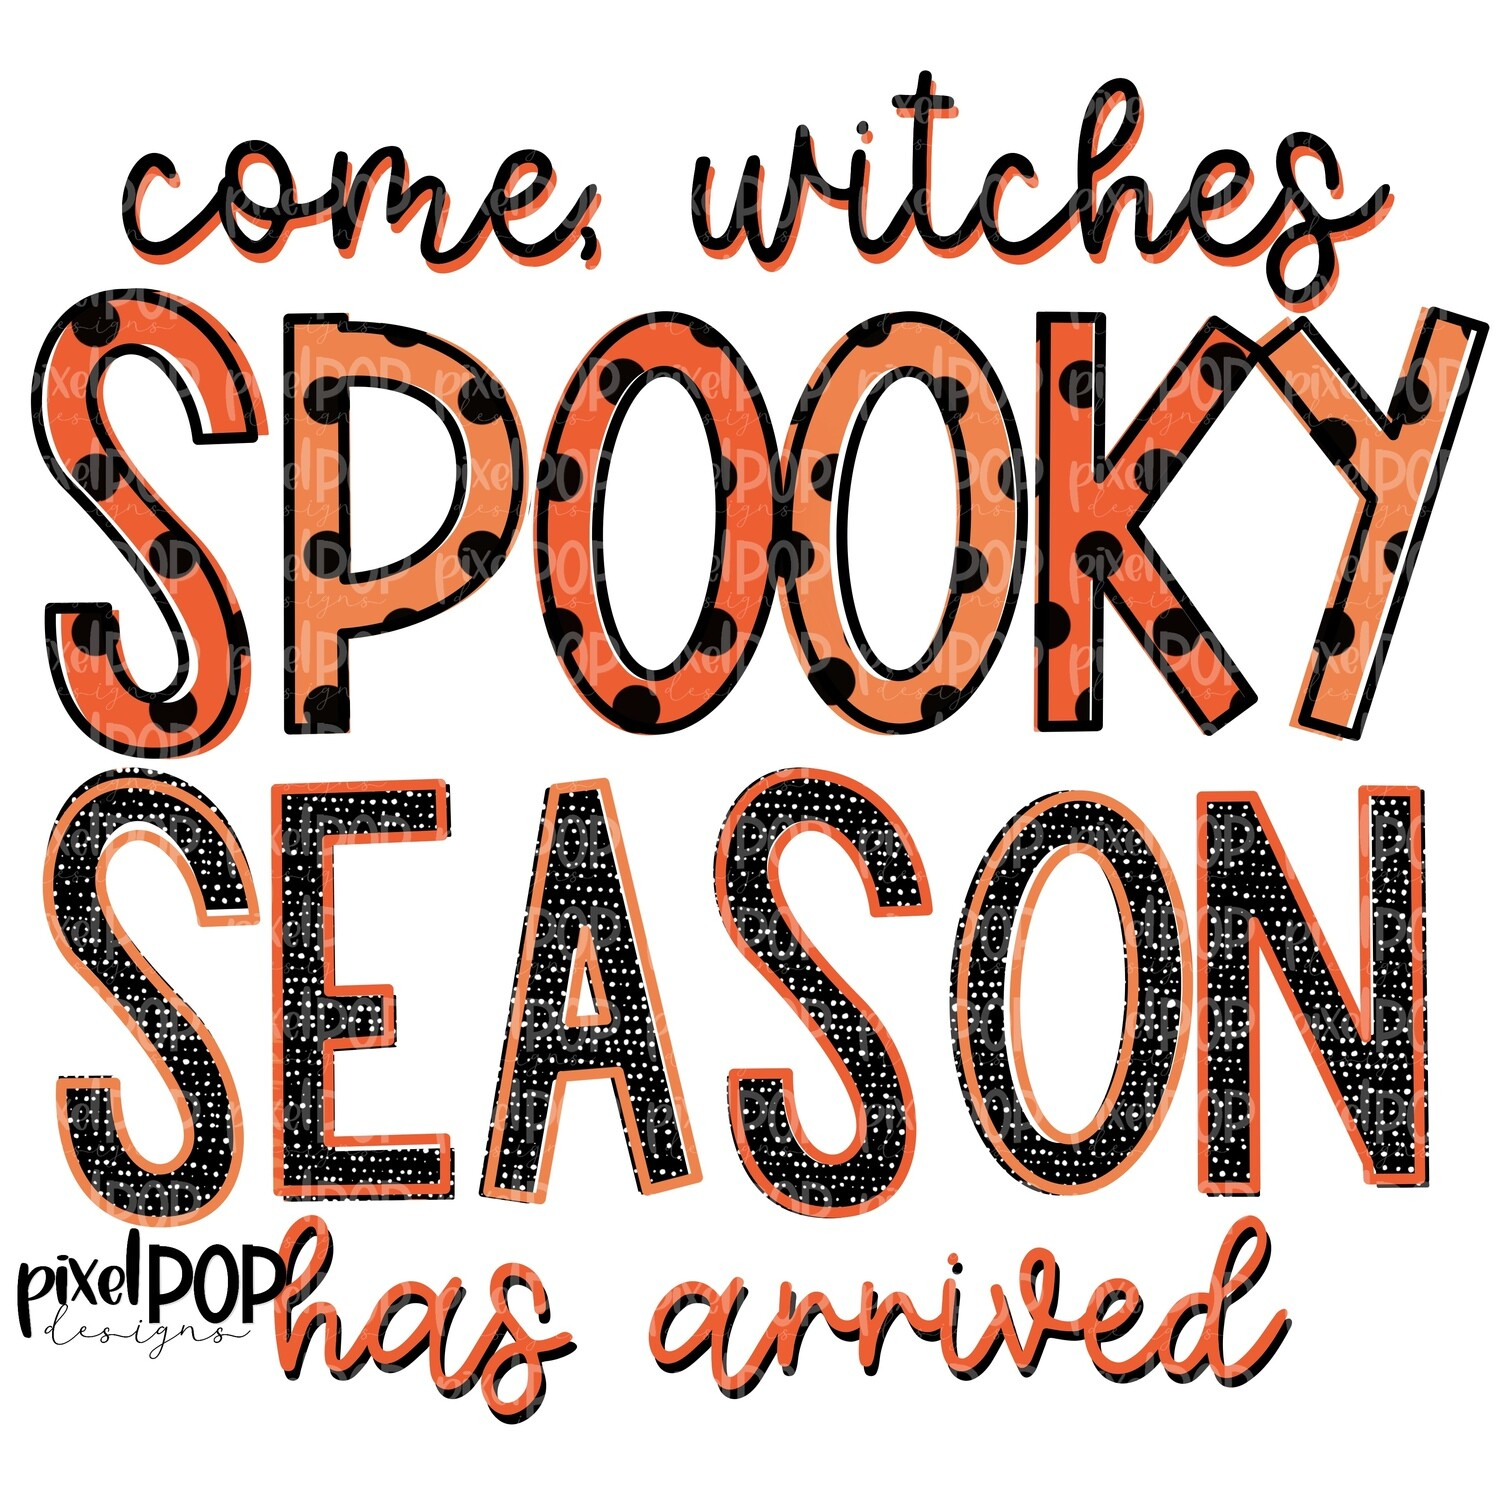 Come Witches Spooky Season Has Arrived PNG   Halloween Design   Halloween PNG   Spooky Season   Digital Download   Printable Artwork   Art